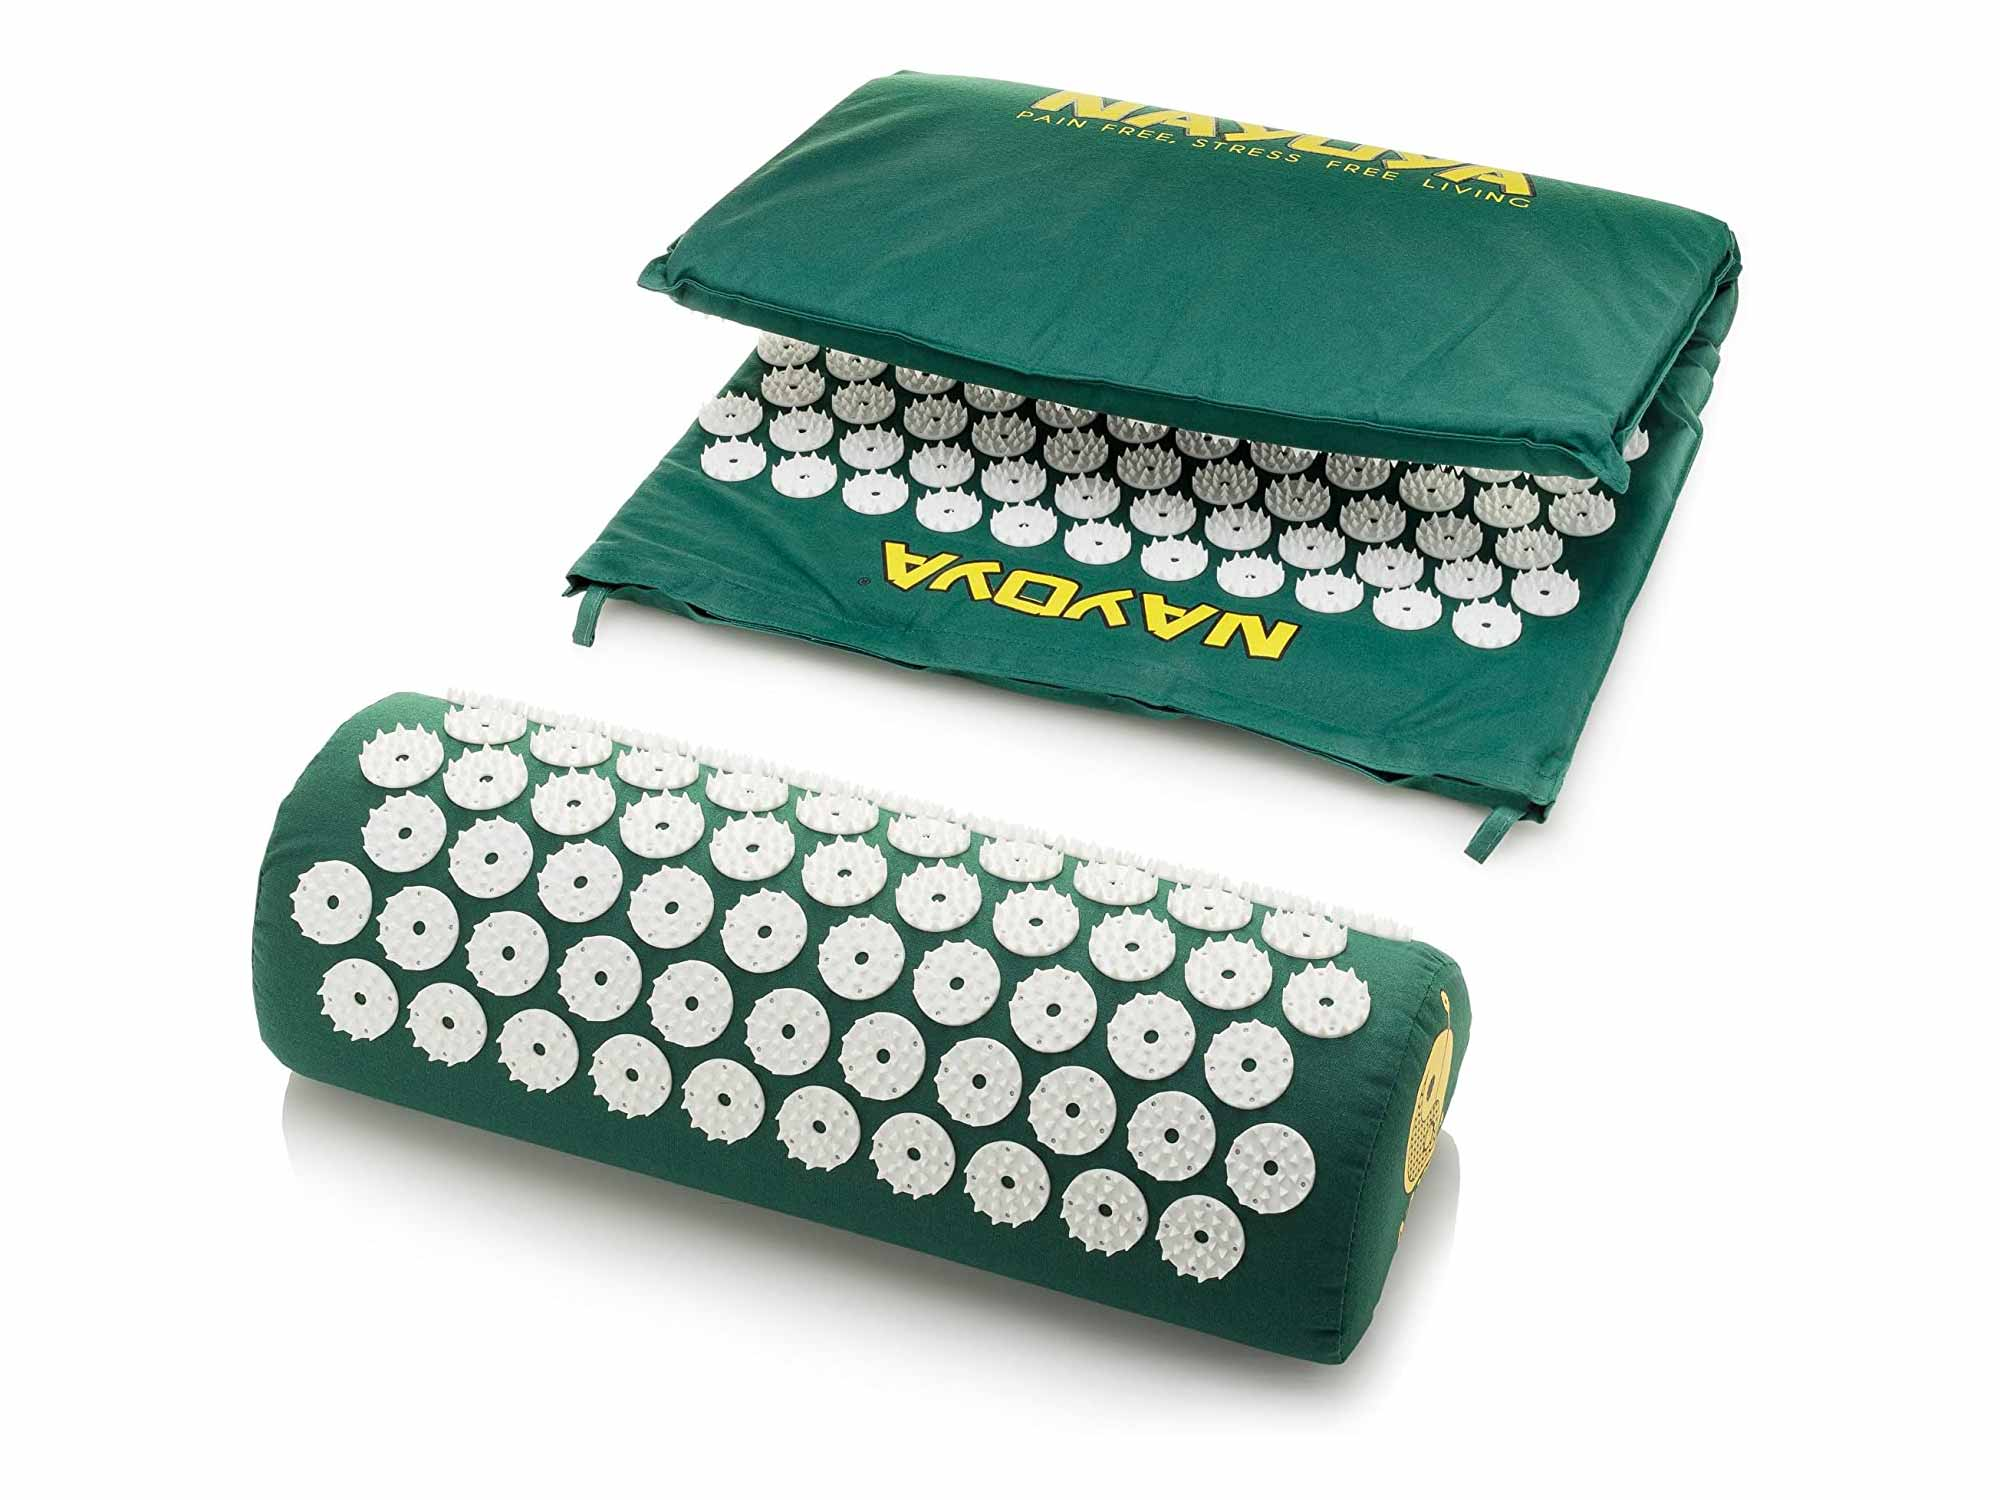 At Home Back and Neck Pain Relief - Acupressure Mat and Neck Pillow Set